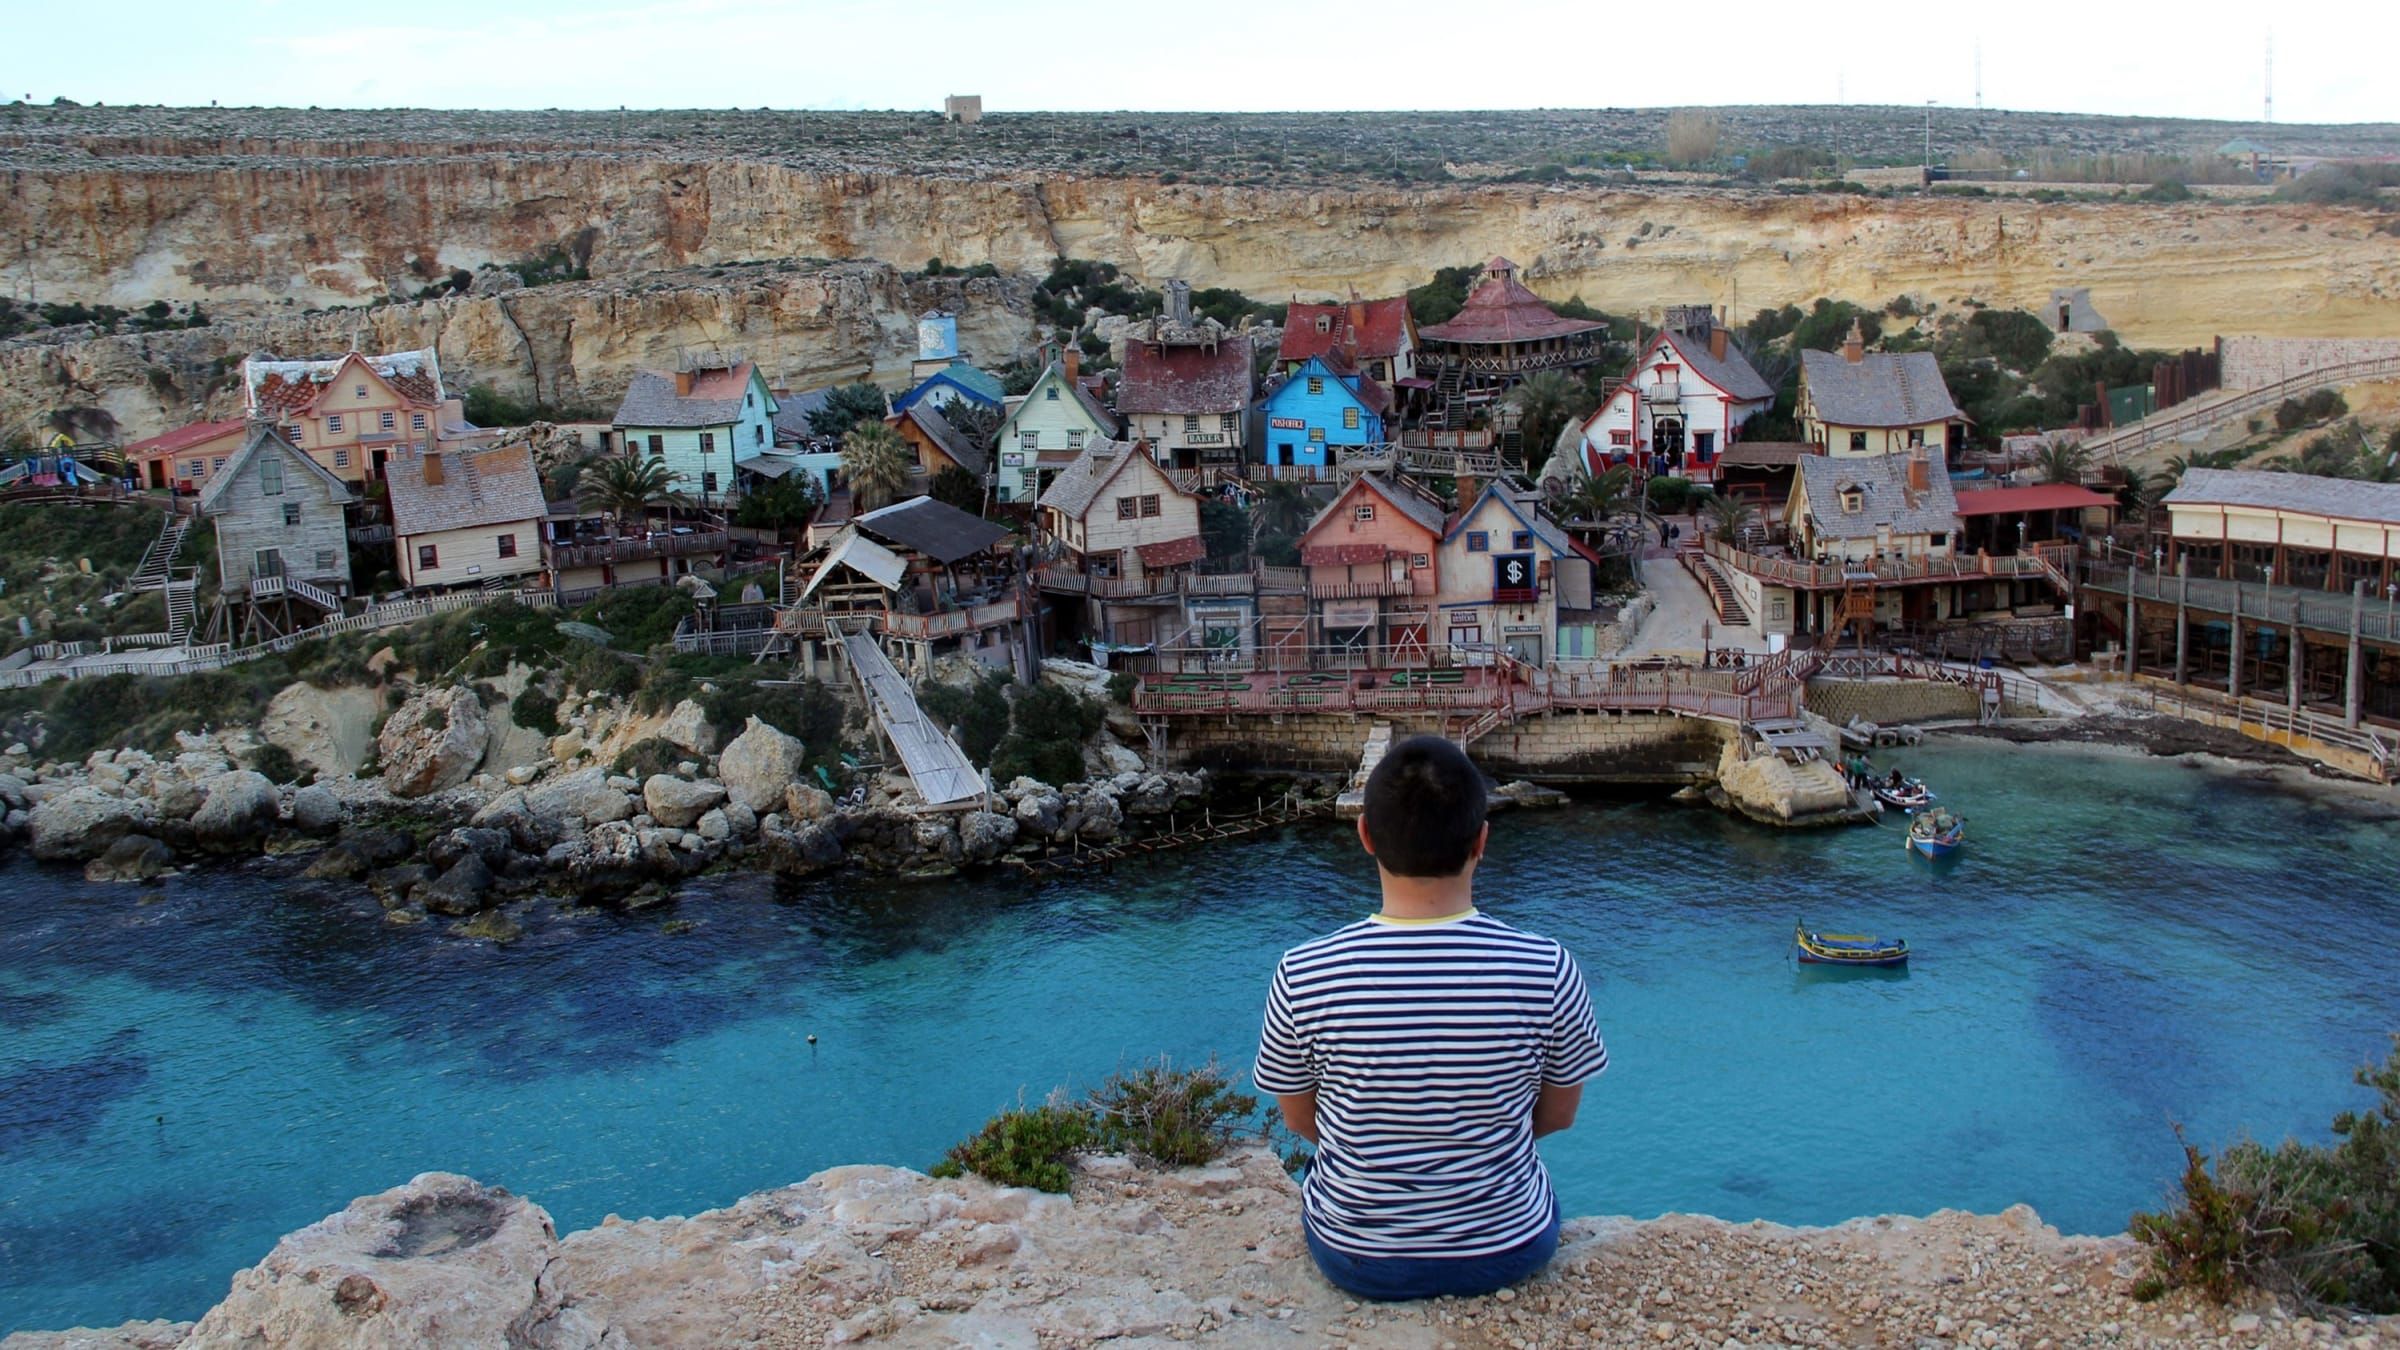 Malta's Popeye Village: Inside One of the Meditteranean's Most Absurd and F*cked Up Attractions